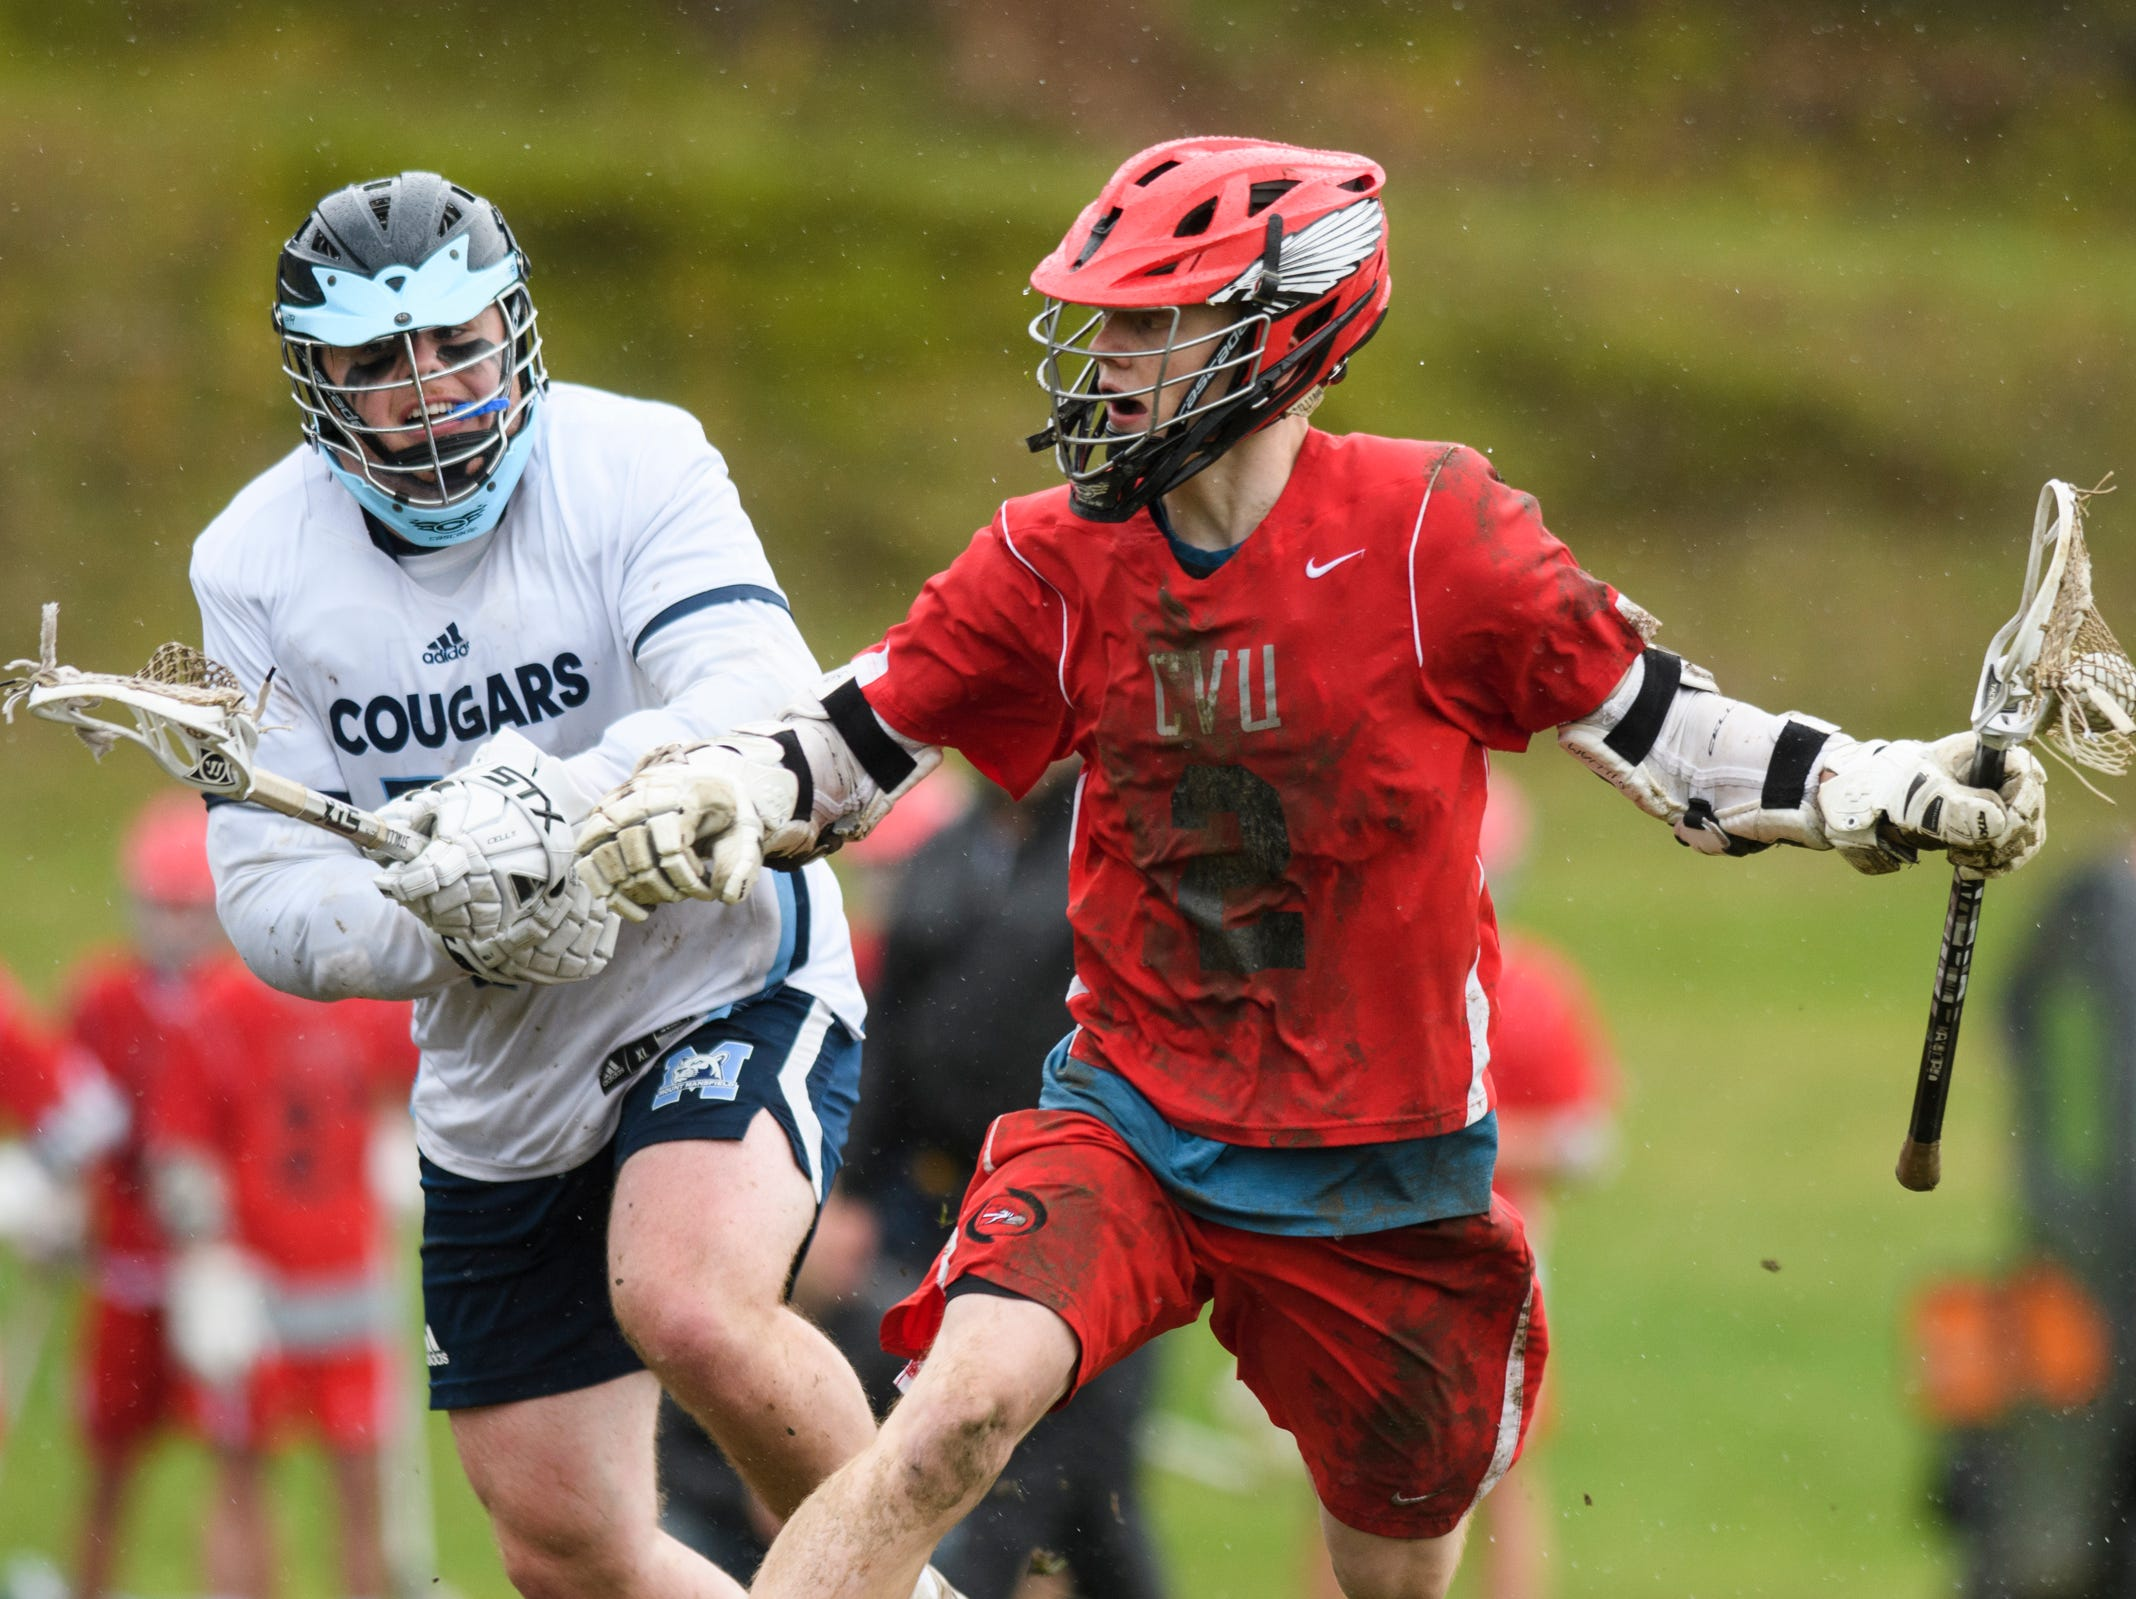 CVU's Sean Gilliam (2) runs past MMU's Will Half (10) during the boys lacrosse game between the Champlain Valley Union Redhawks and the Mount Mansfield Cougars at MMU High School on Tuesday afternoon May 14, 2019 in Jericho, Vermont.